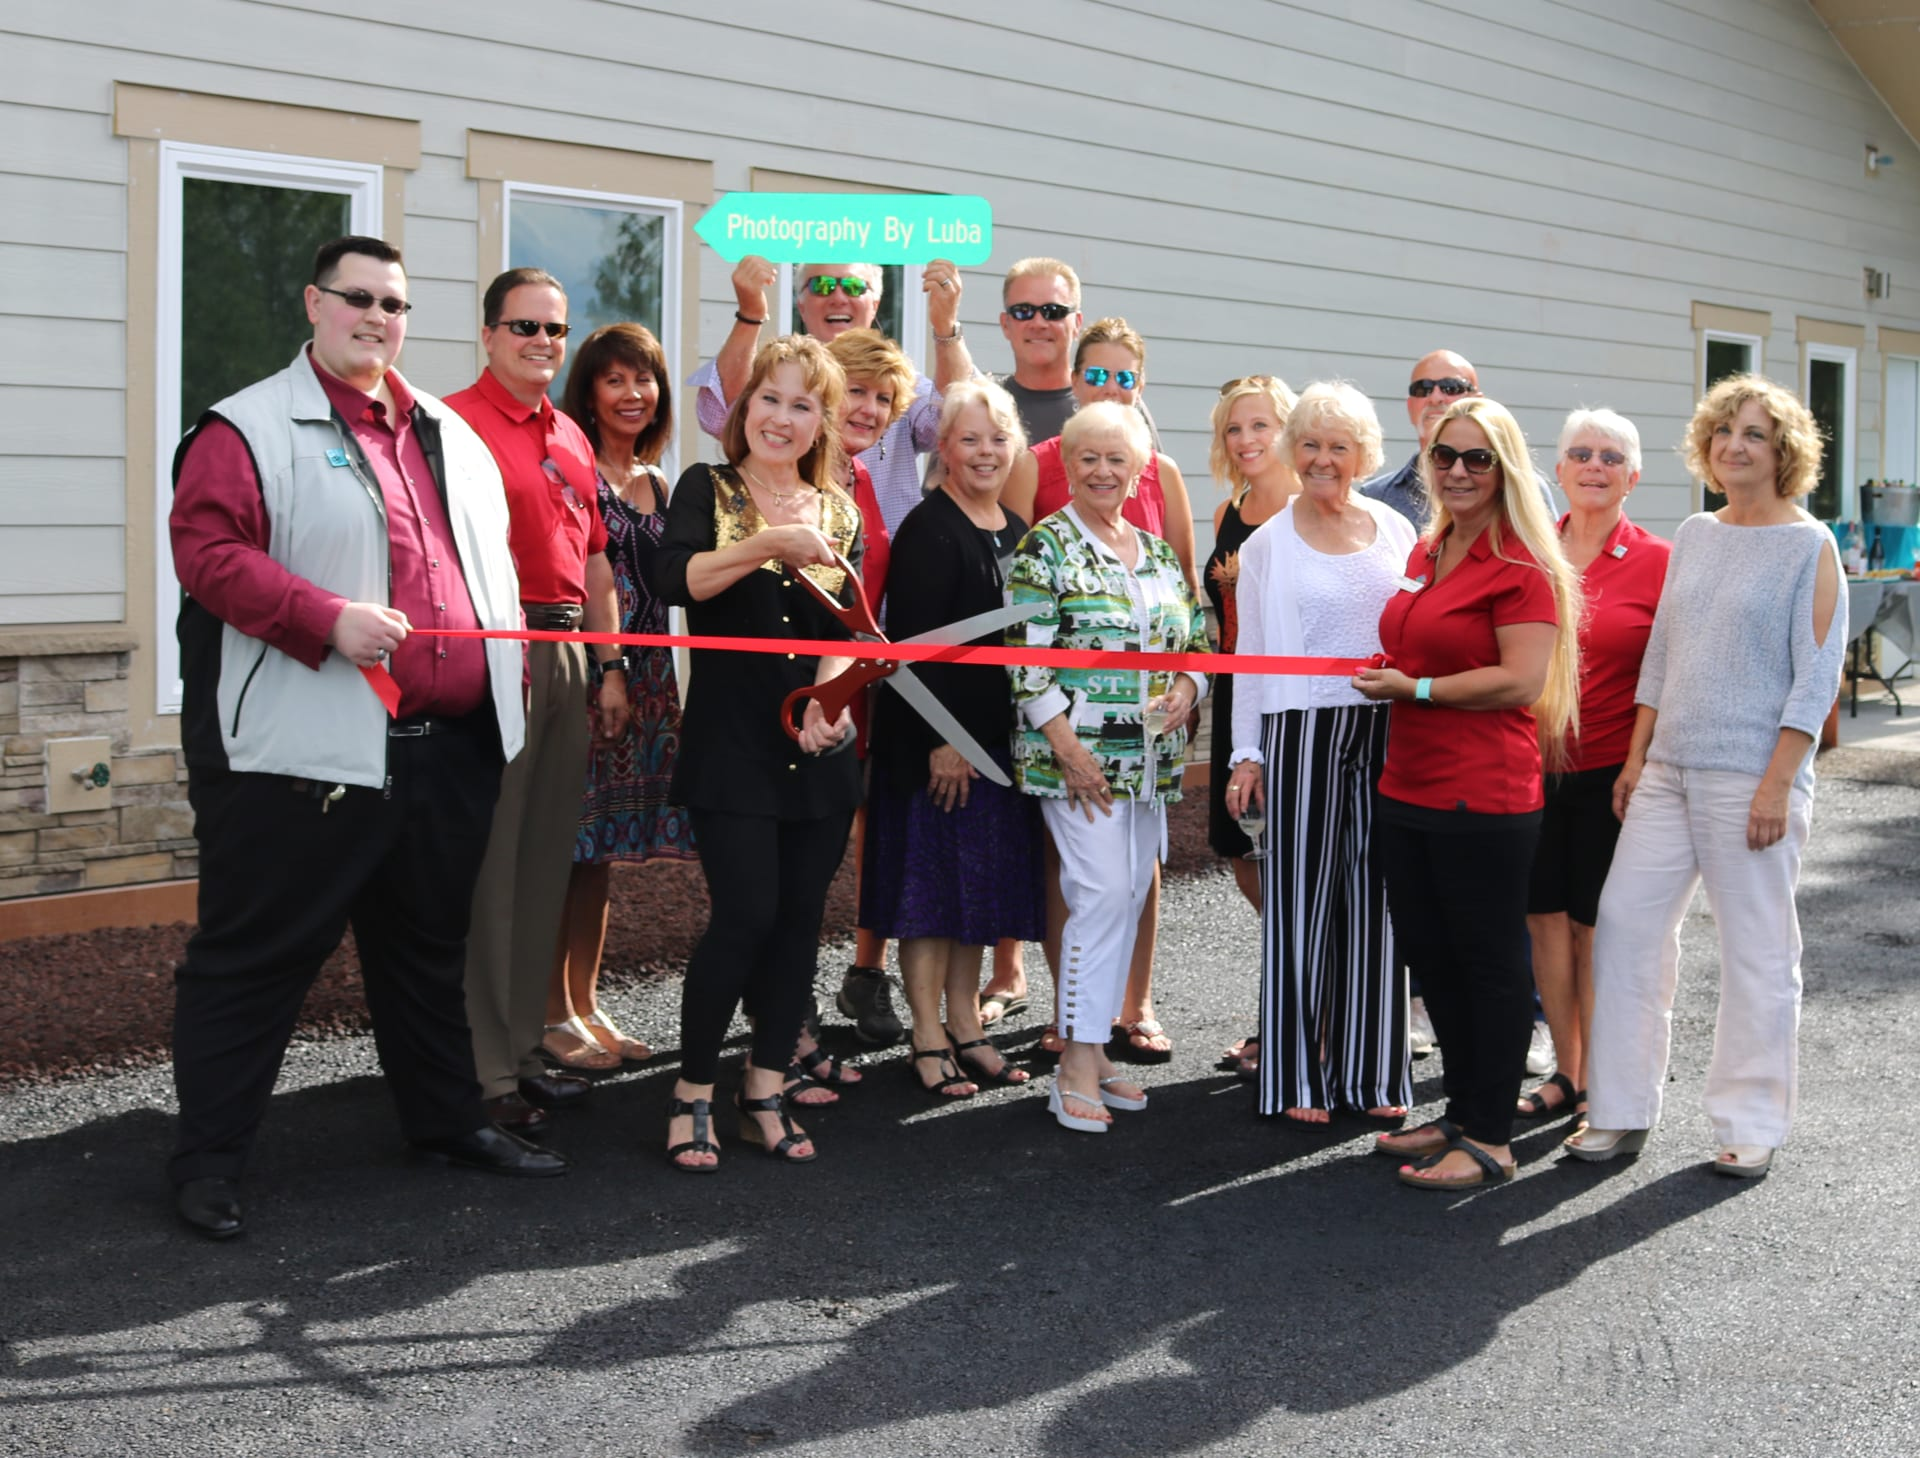 Photography-by-Luba-ribbon-cutting-w1920.jpg